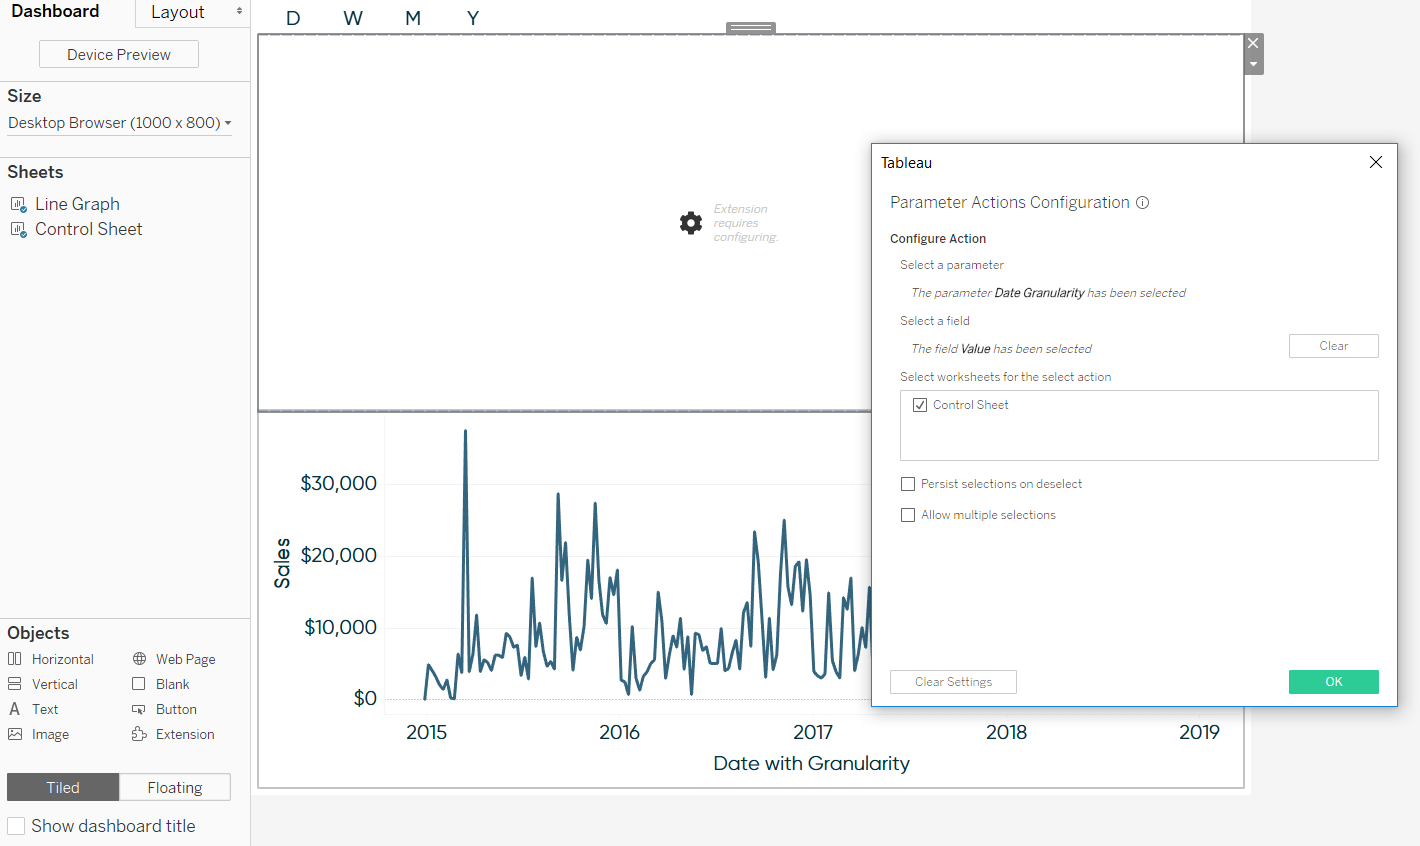 Configuring the Parameter Actions Extension in Tableau